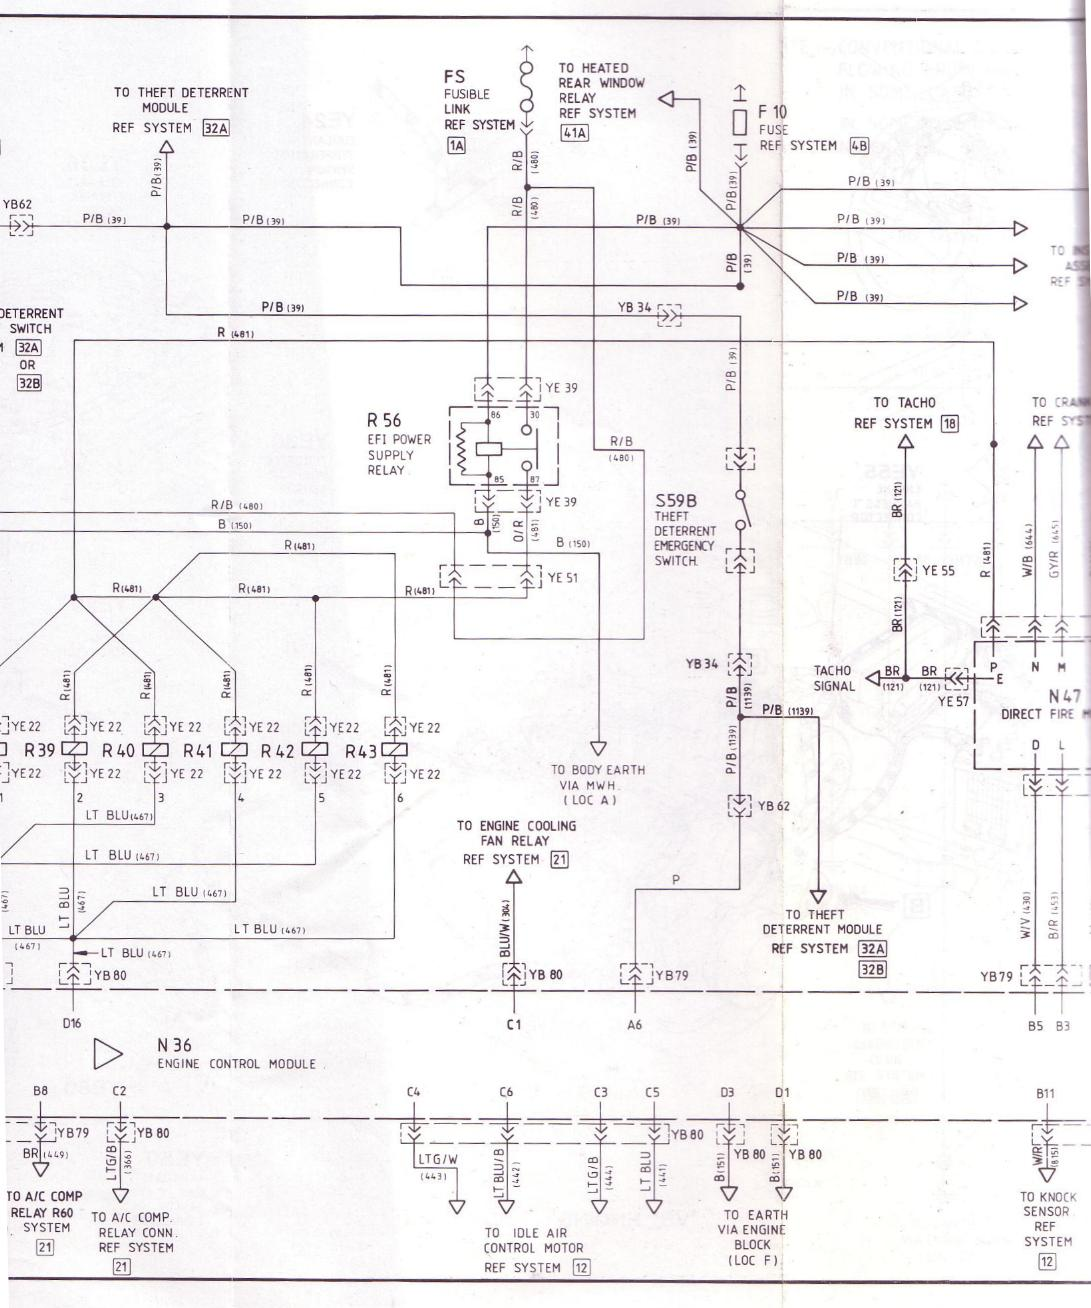 Ls1 Wiring Diagram : Vy ls wiring diagram images